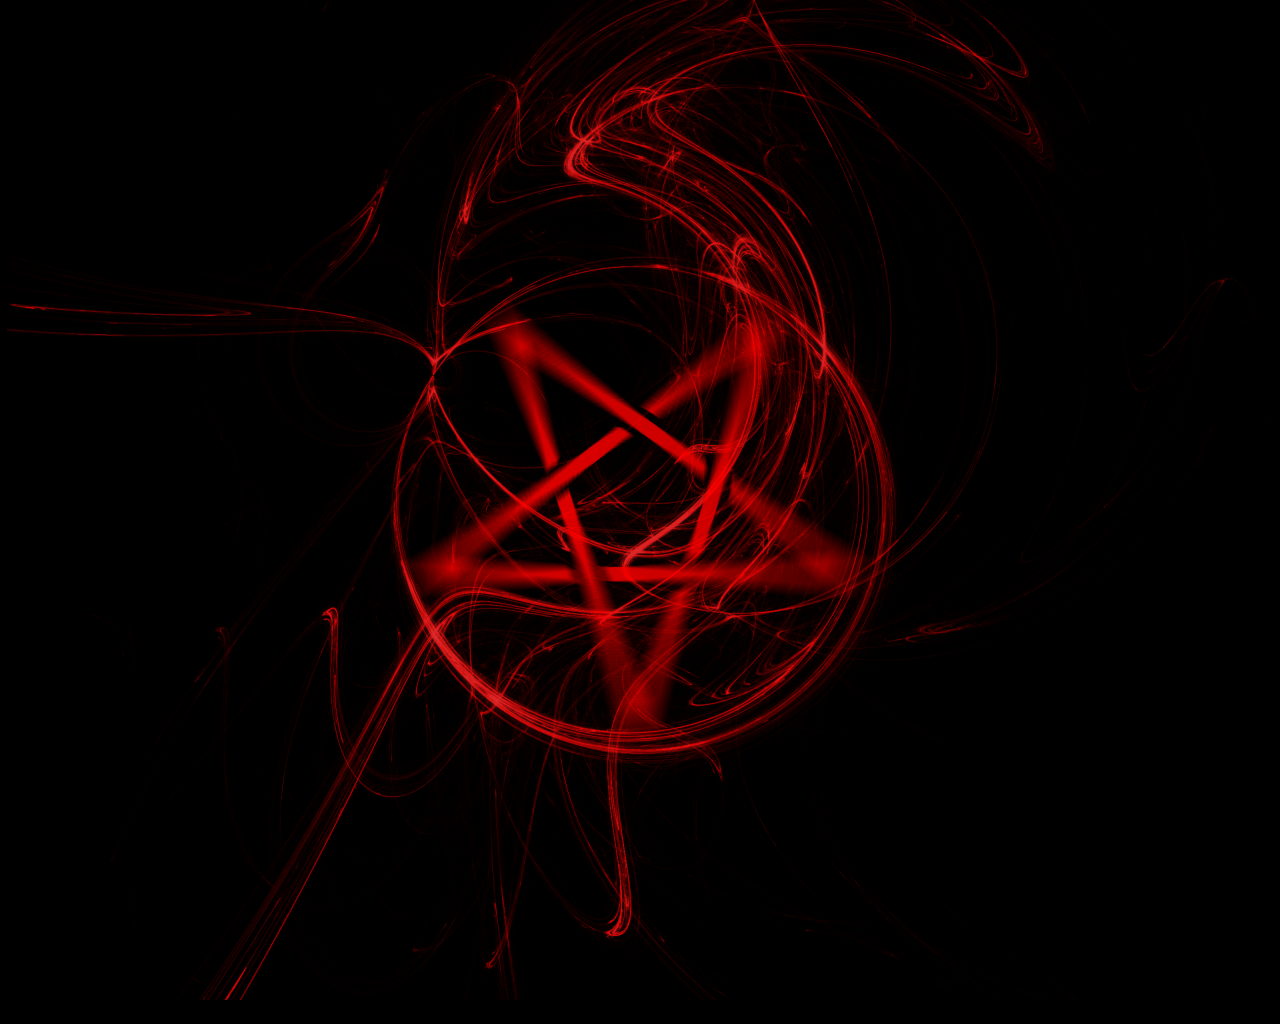 39553754 Pentagram Wallpaper | Download for Free